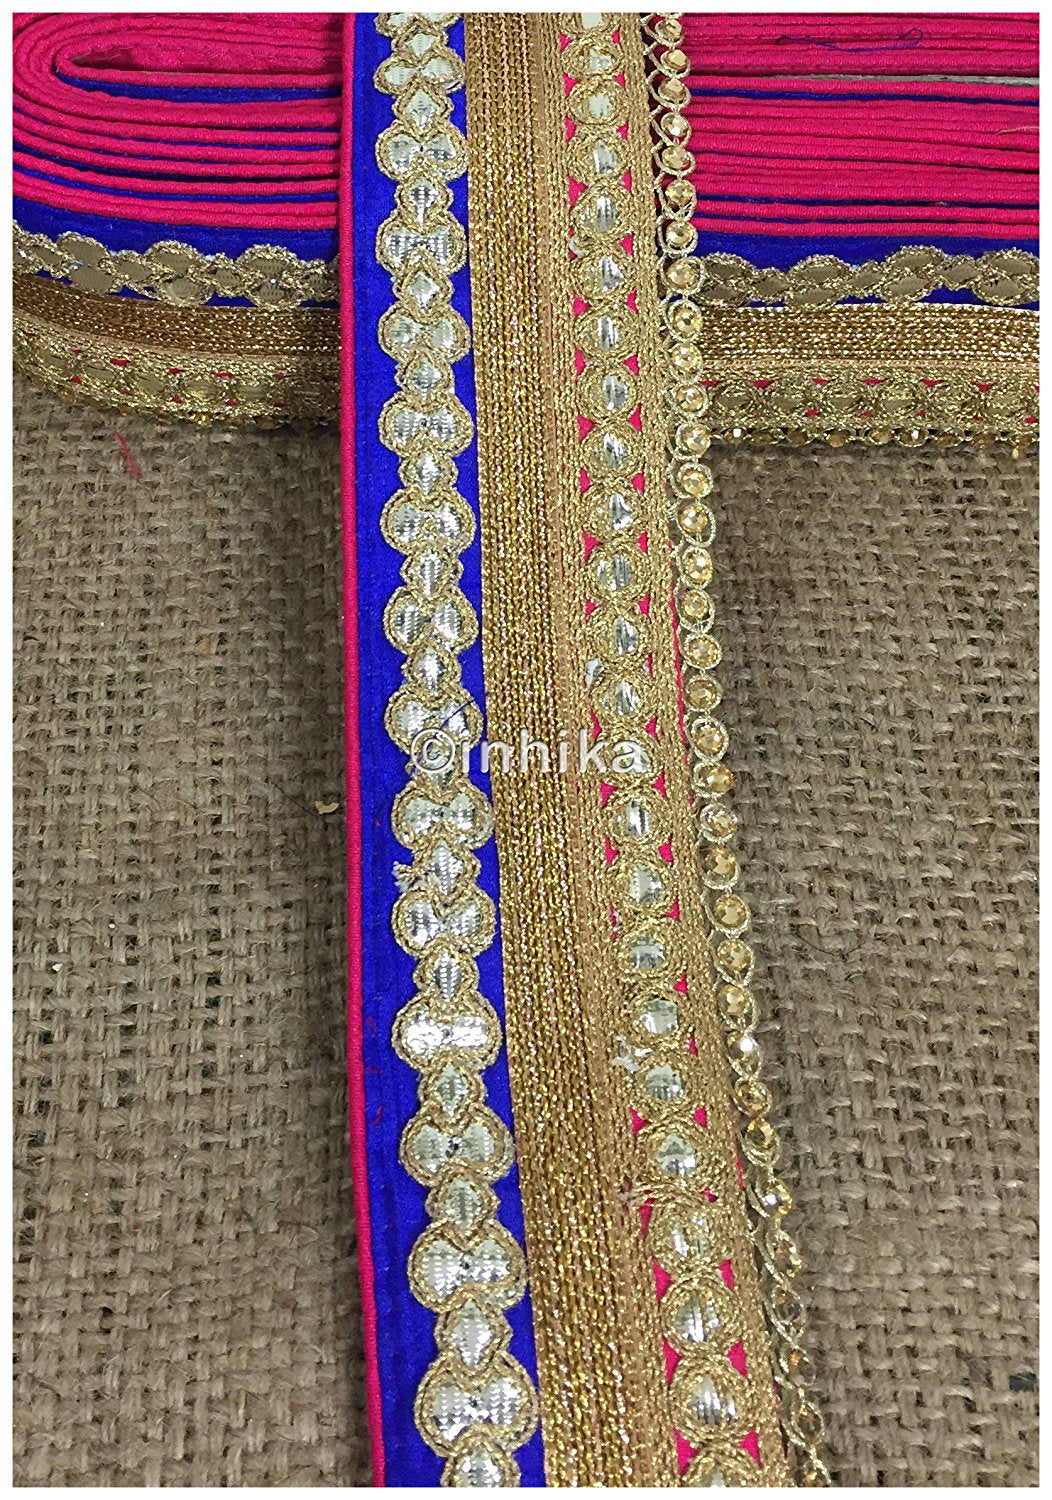 lace trim fabric where to buy fringe for clothing Rani-Pink-Blue-Embroidery-Gota-Patti-3-Inch-Wide-3305